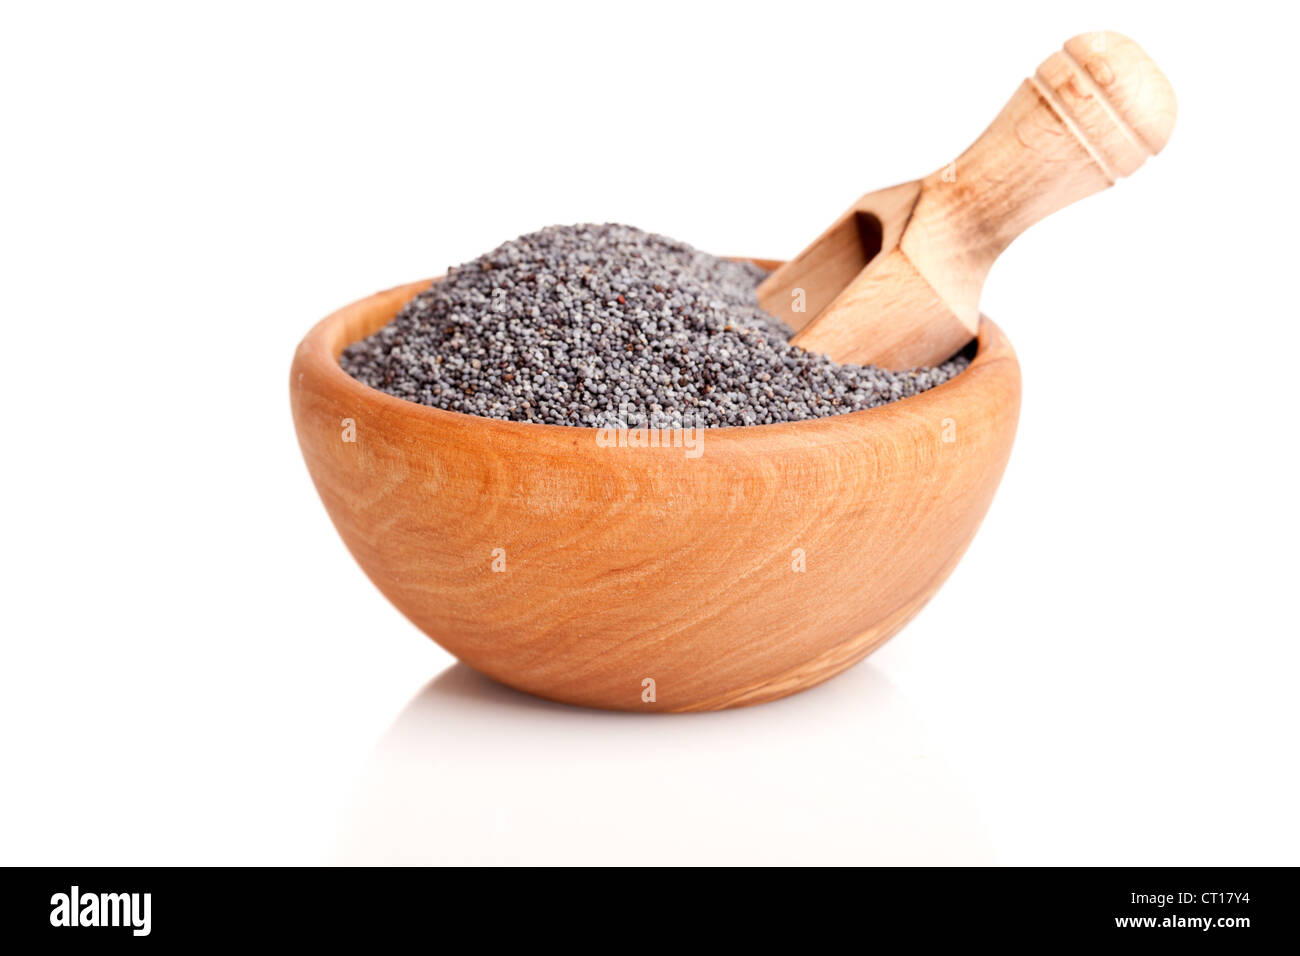 poppyseed in the wooden bowl with spoon, on a white background - Stock Image